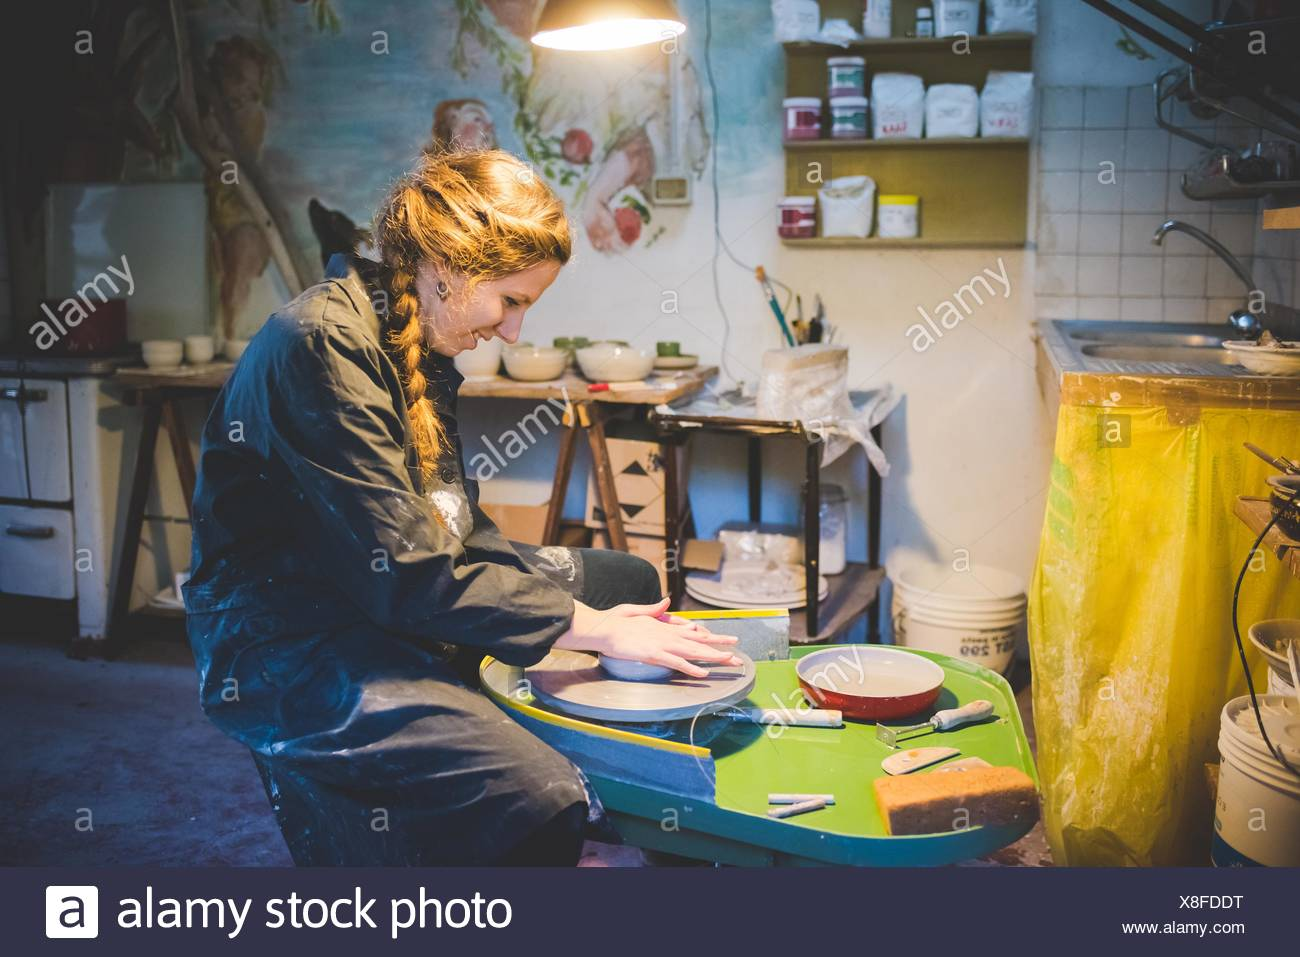 Side view of young woman sitting in workshop using potters wheel, looking down smiling - Stock Image